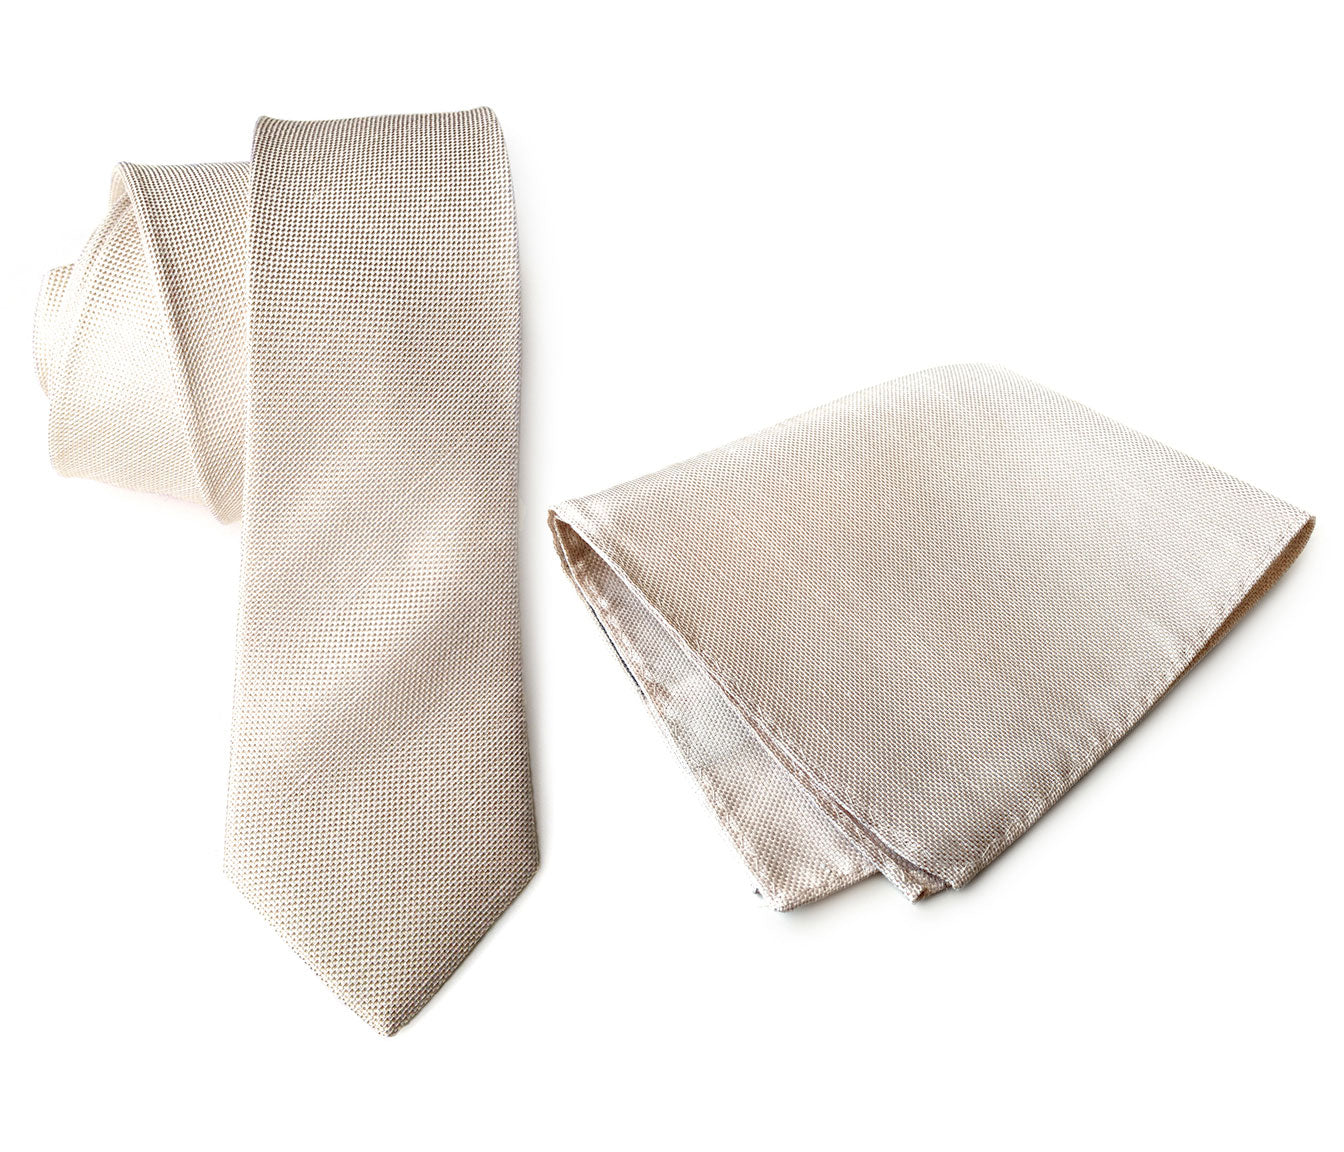 Cyberoptix light khaki linen wedding necktie and pockets square